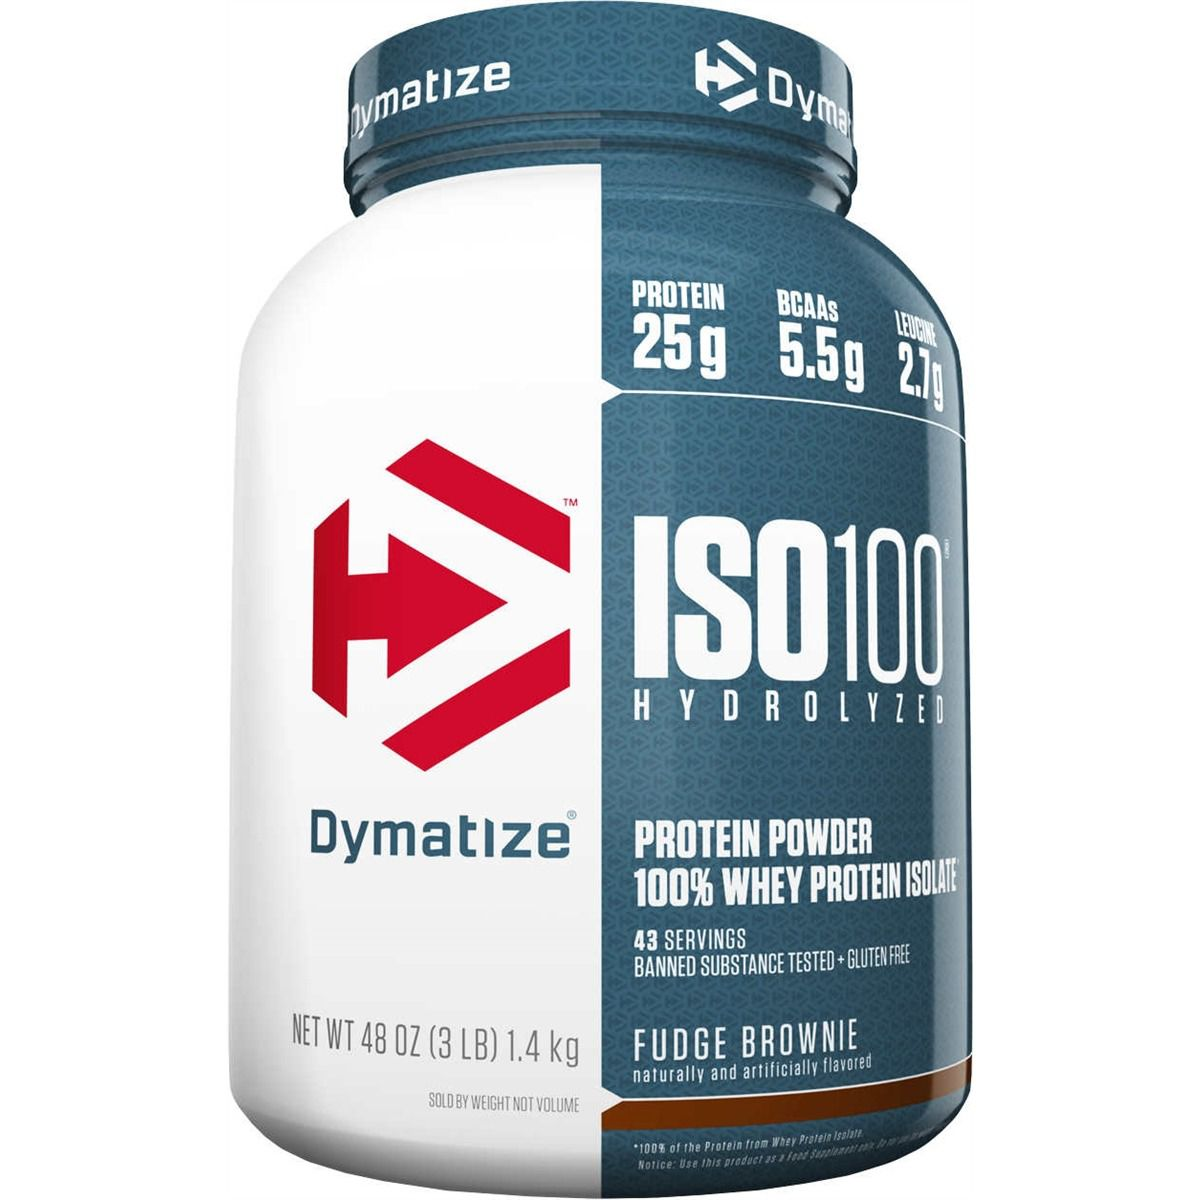 ISO 100 Hydrolyzed Dymatize Nutrition - 1.3kg